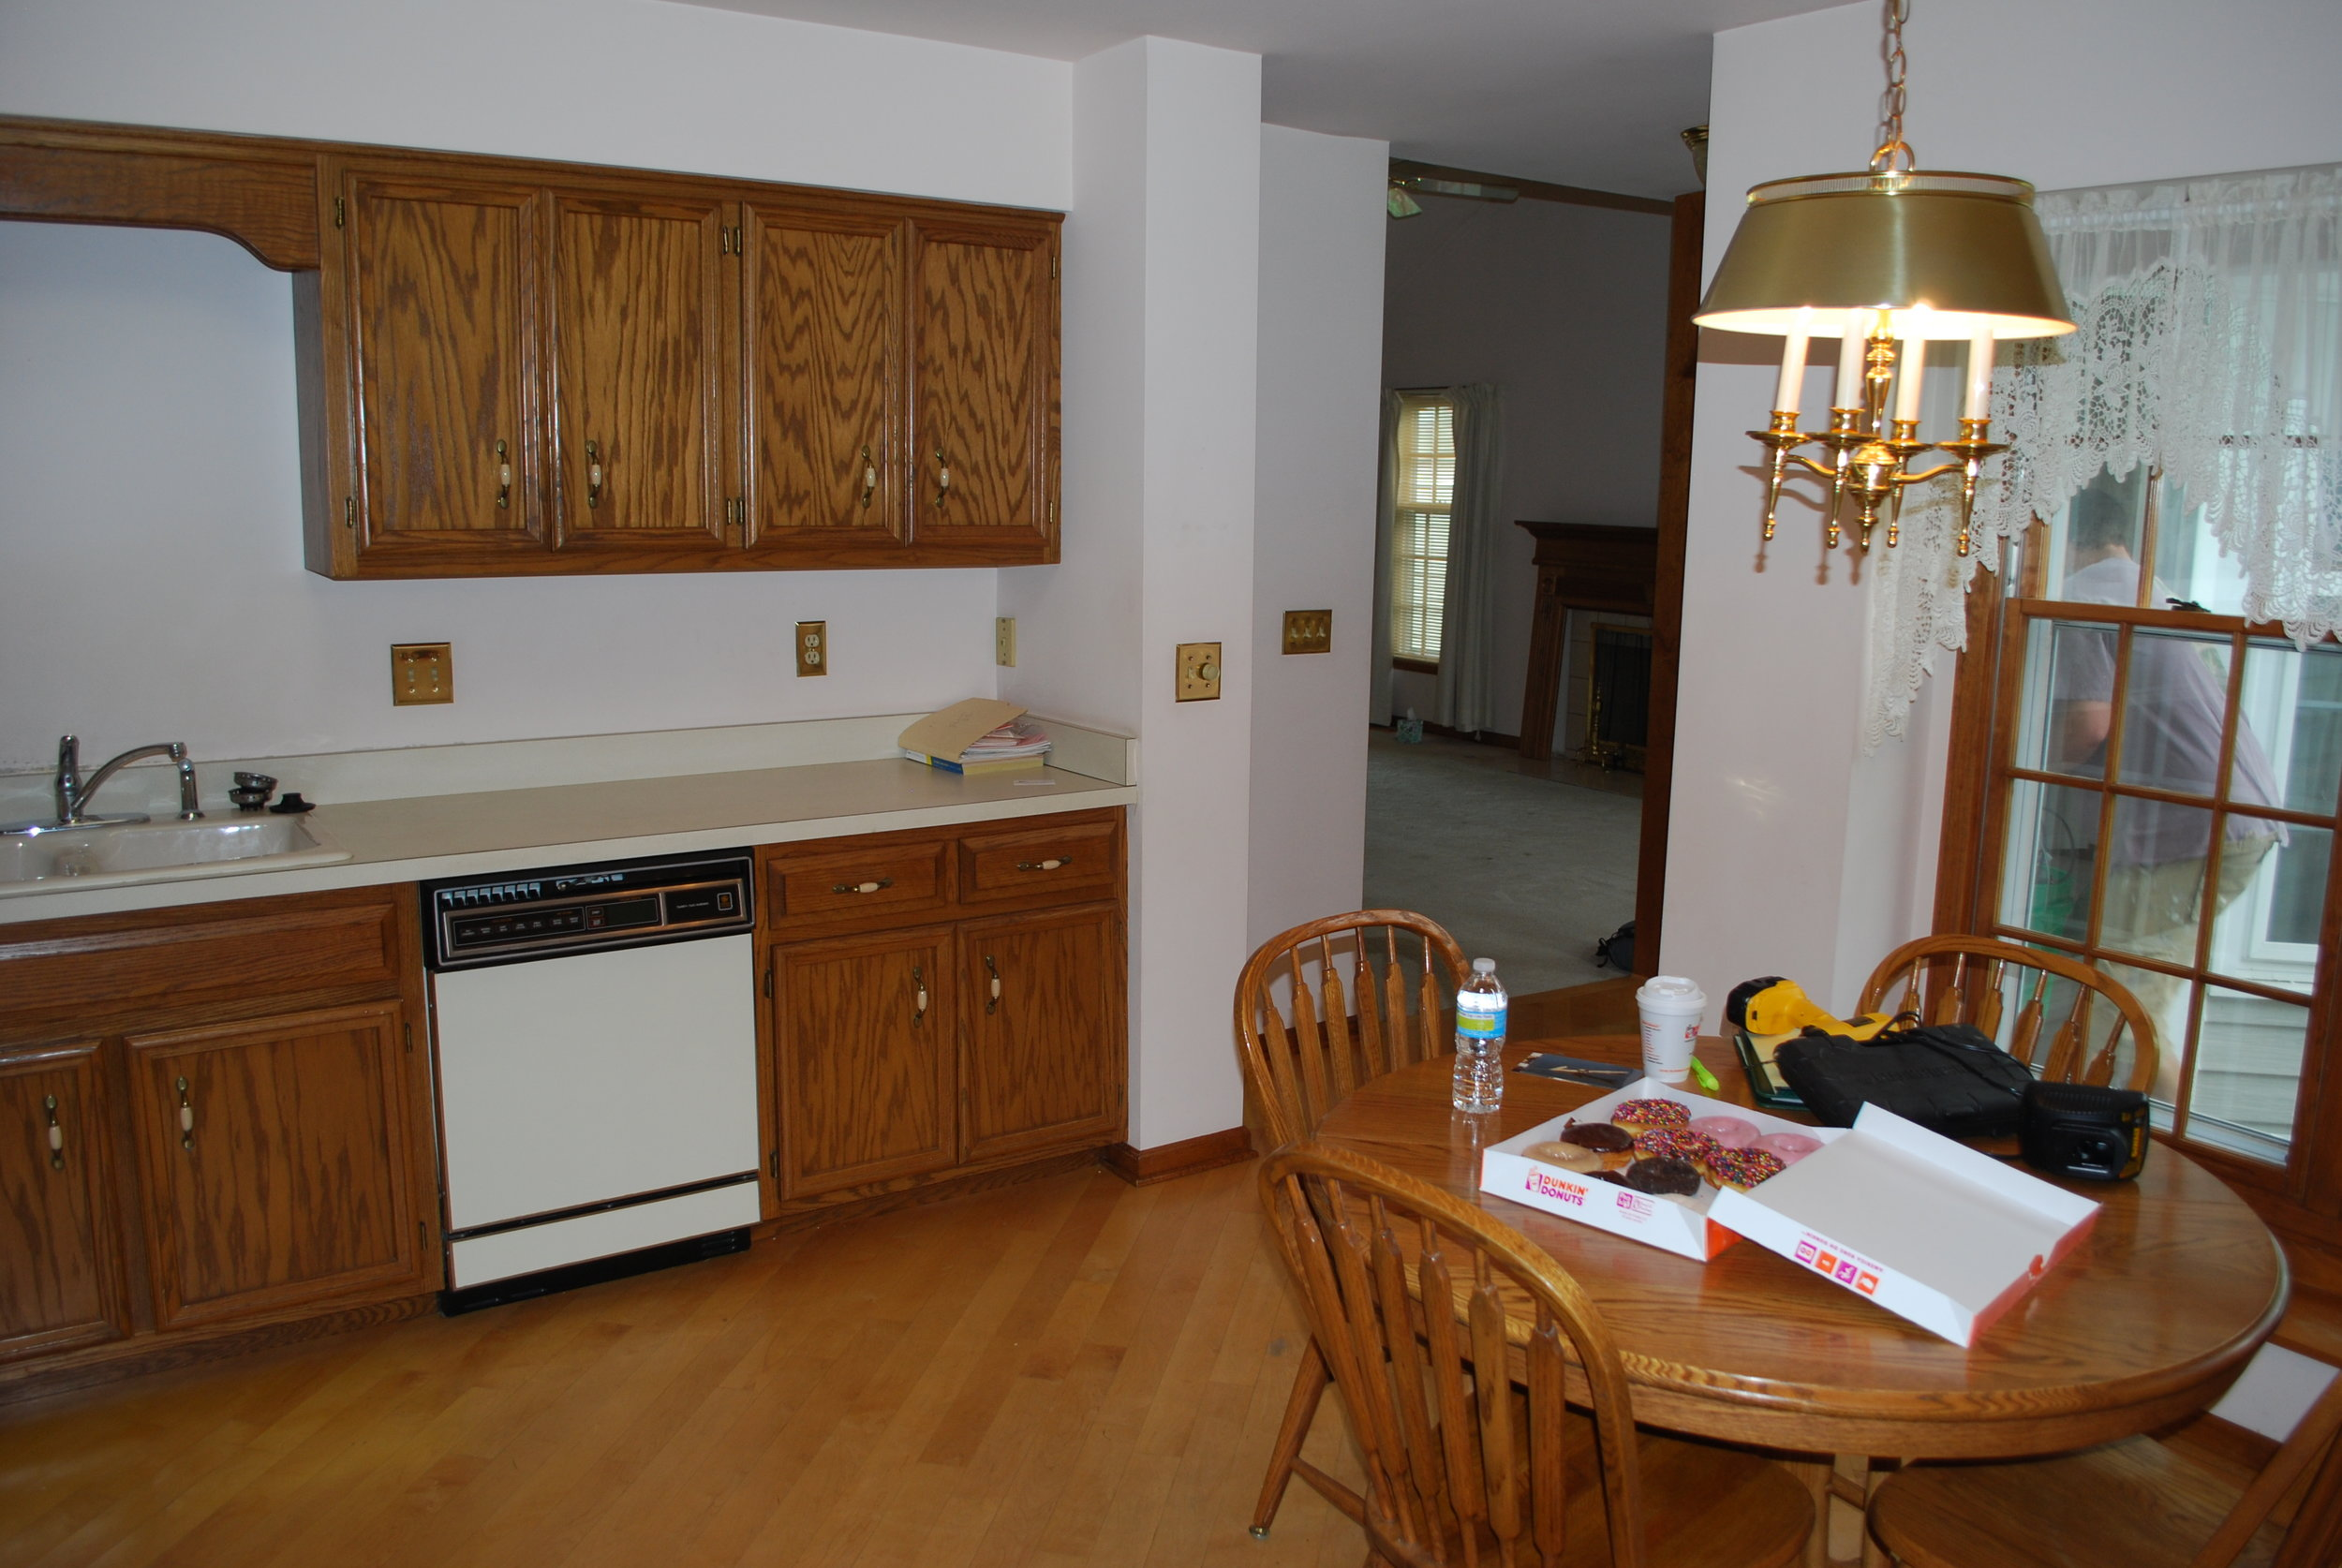 Kitchen in Naperville Townhome End Unit Before Updating. First Floor Updating & Refinished Flooring.